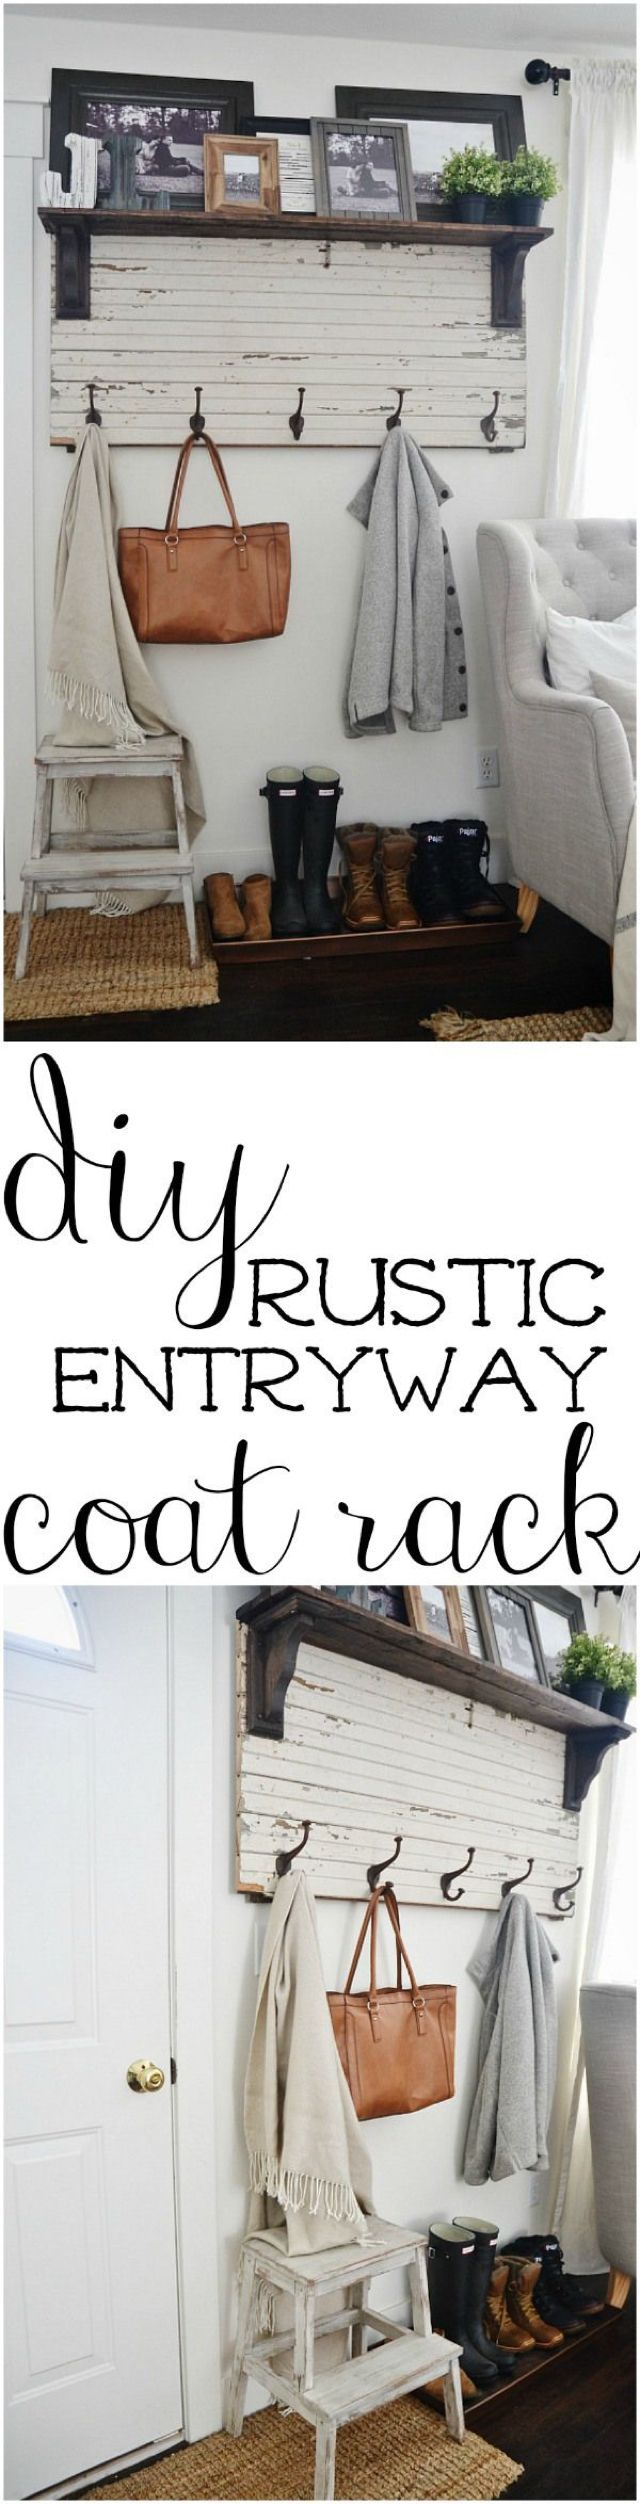 Give your coats a place to rest with a DIY rustic entryway coat rack.